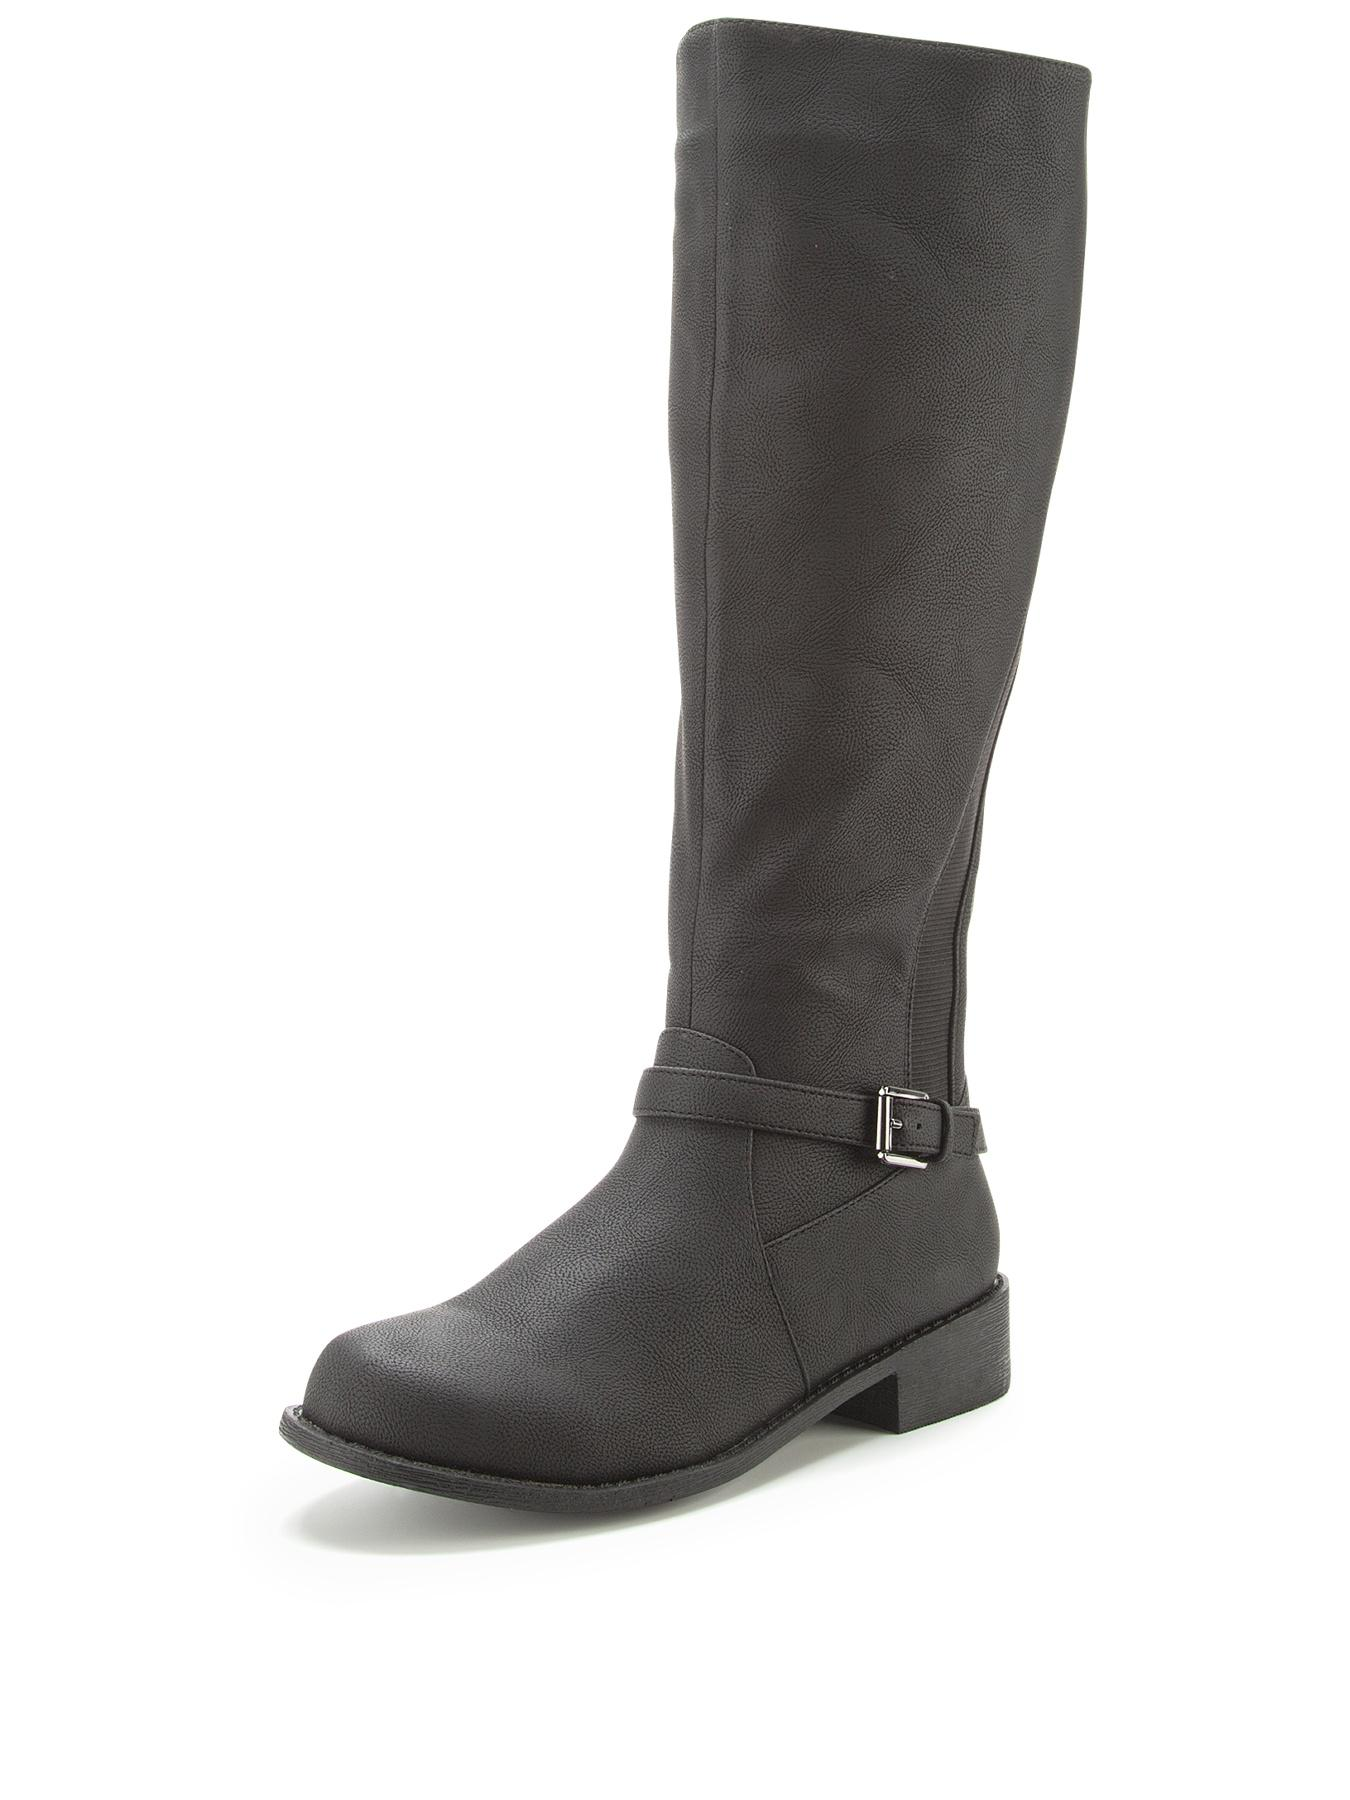 Shoe Box Abigail Elastic Gusset Riding Boots